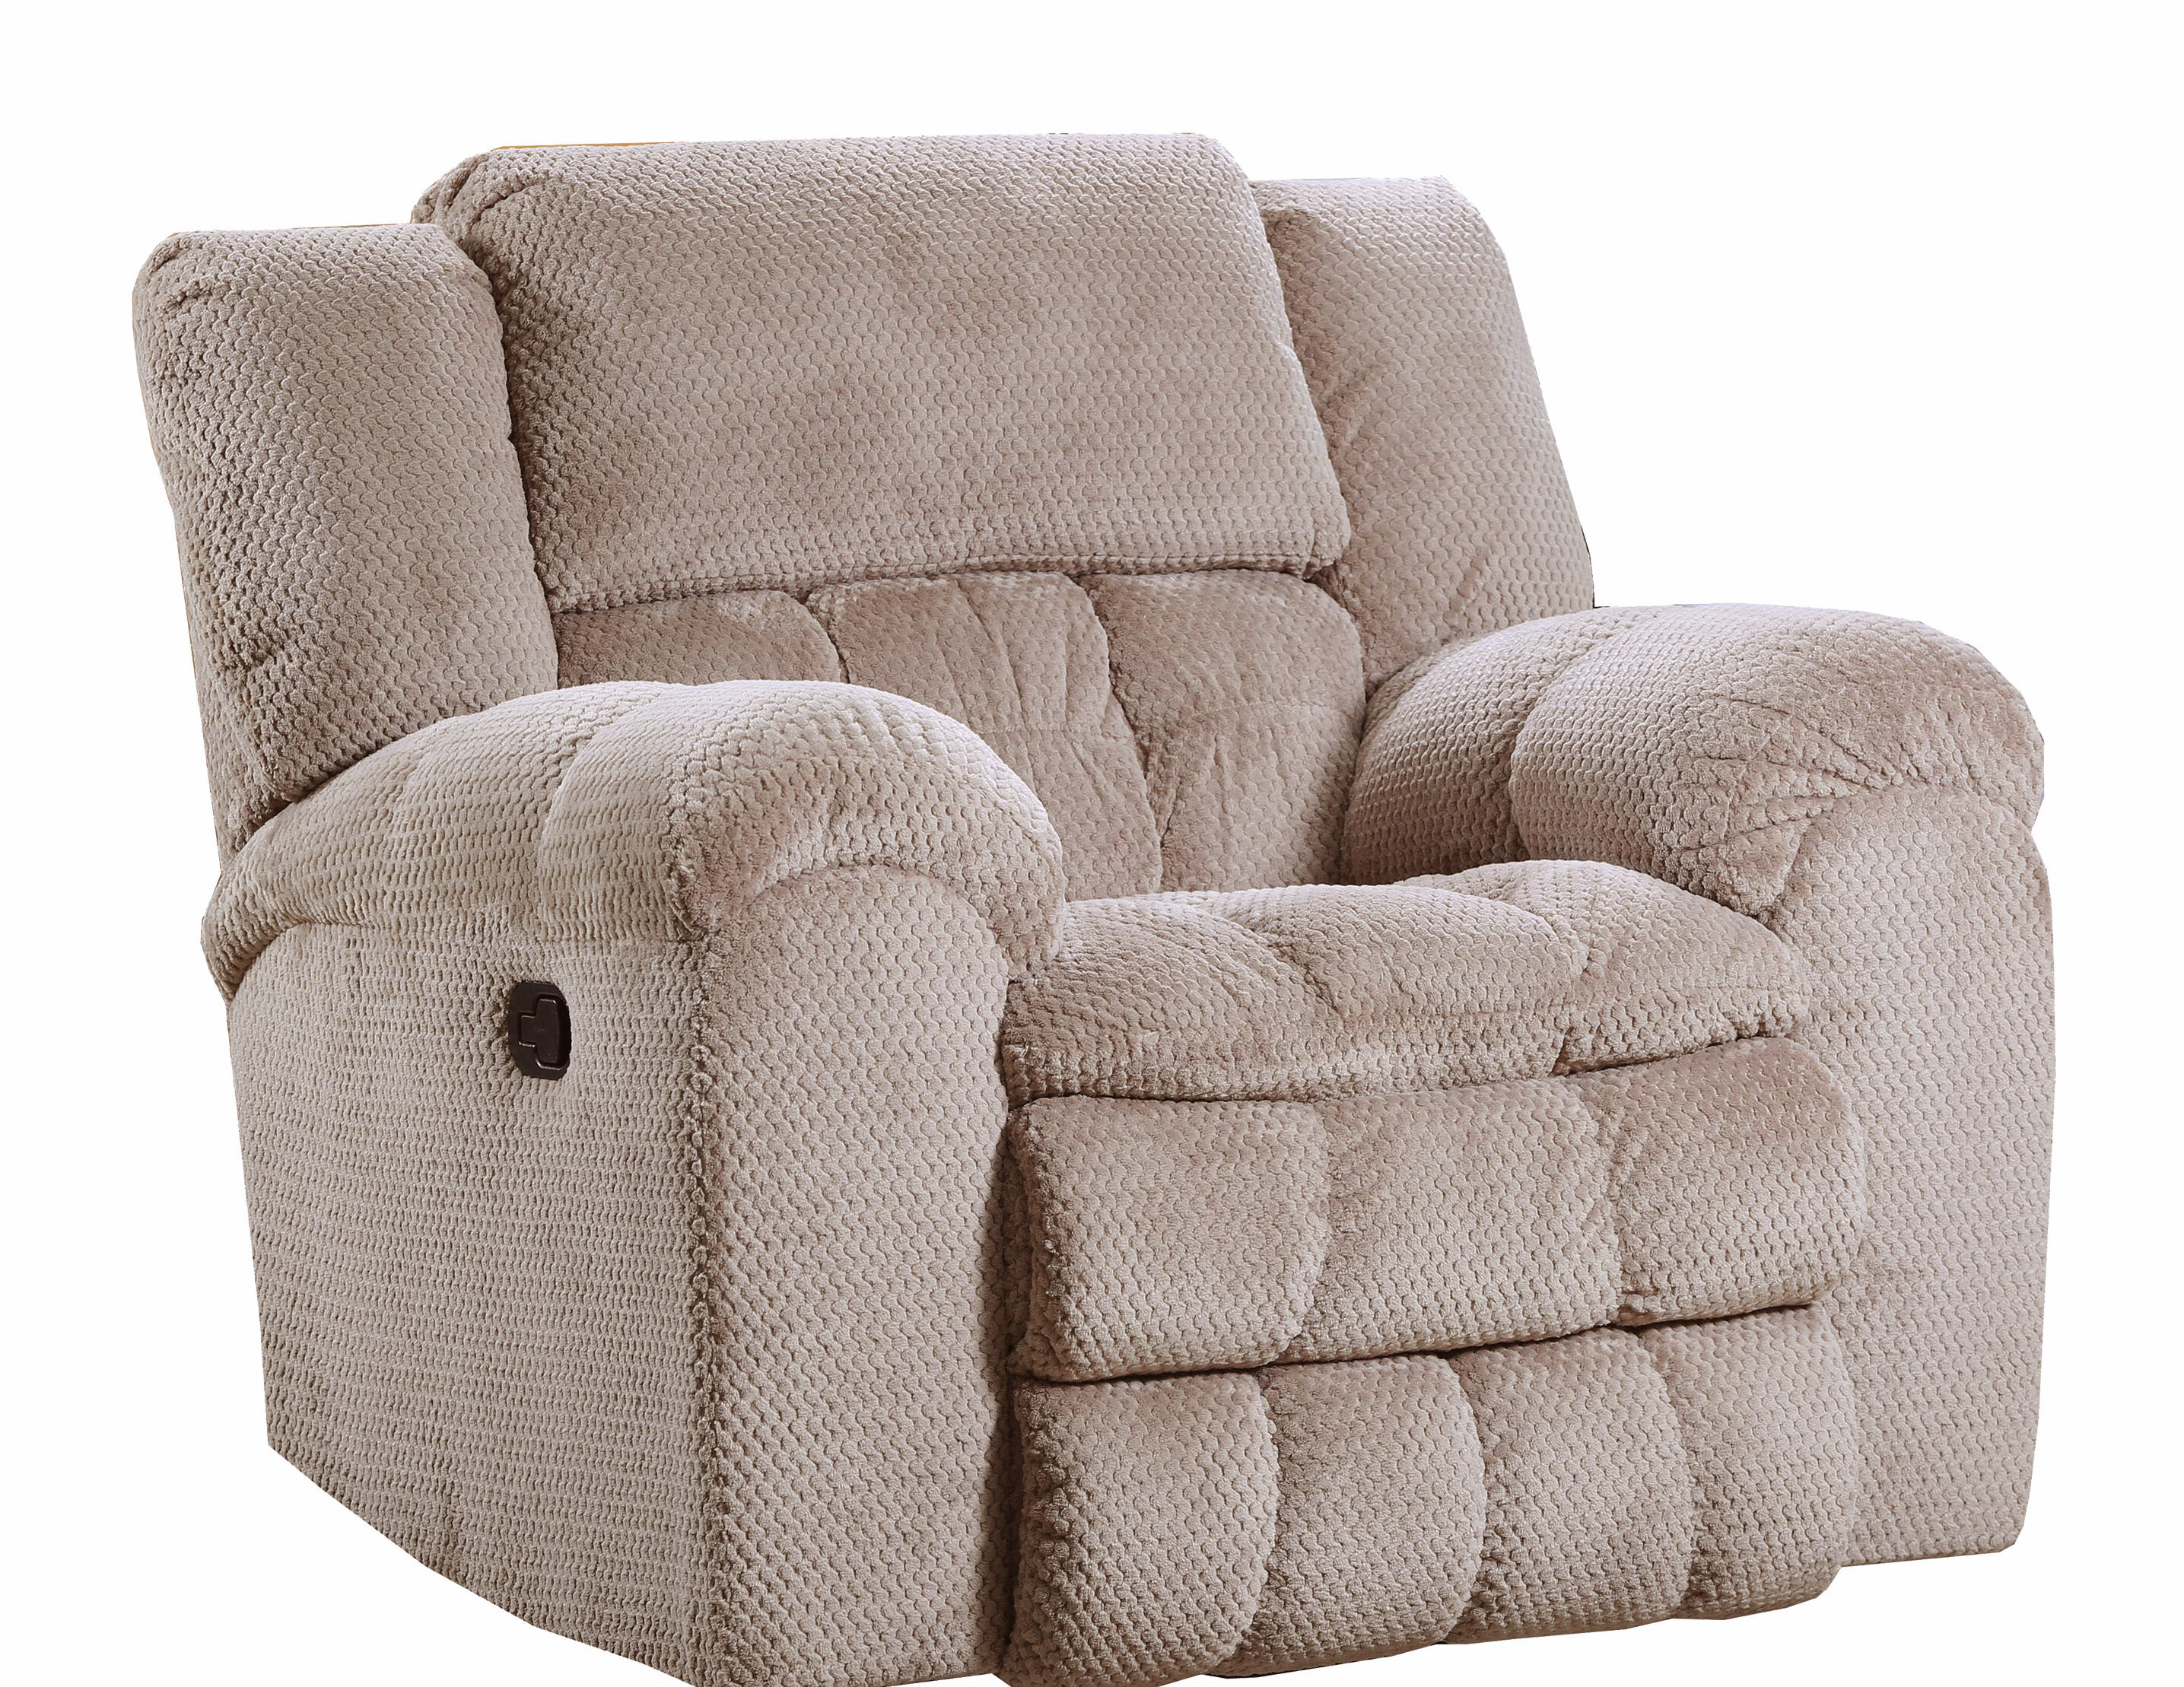 Remarkable Henning Fabric Rocker Recliner By Simmons Upholstery Ocoug Best Dining Table And Chair Ideas Images Ocougorg